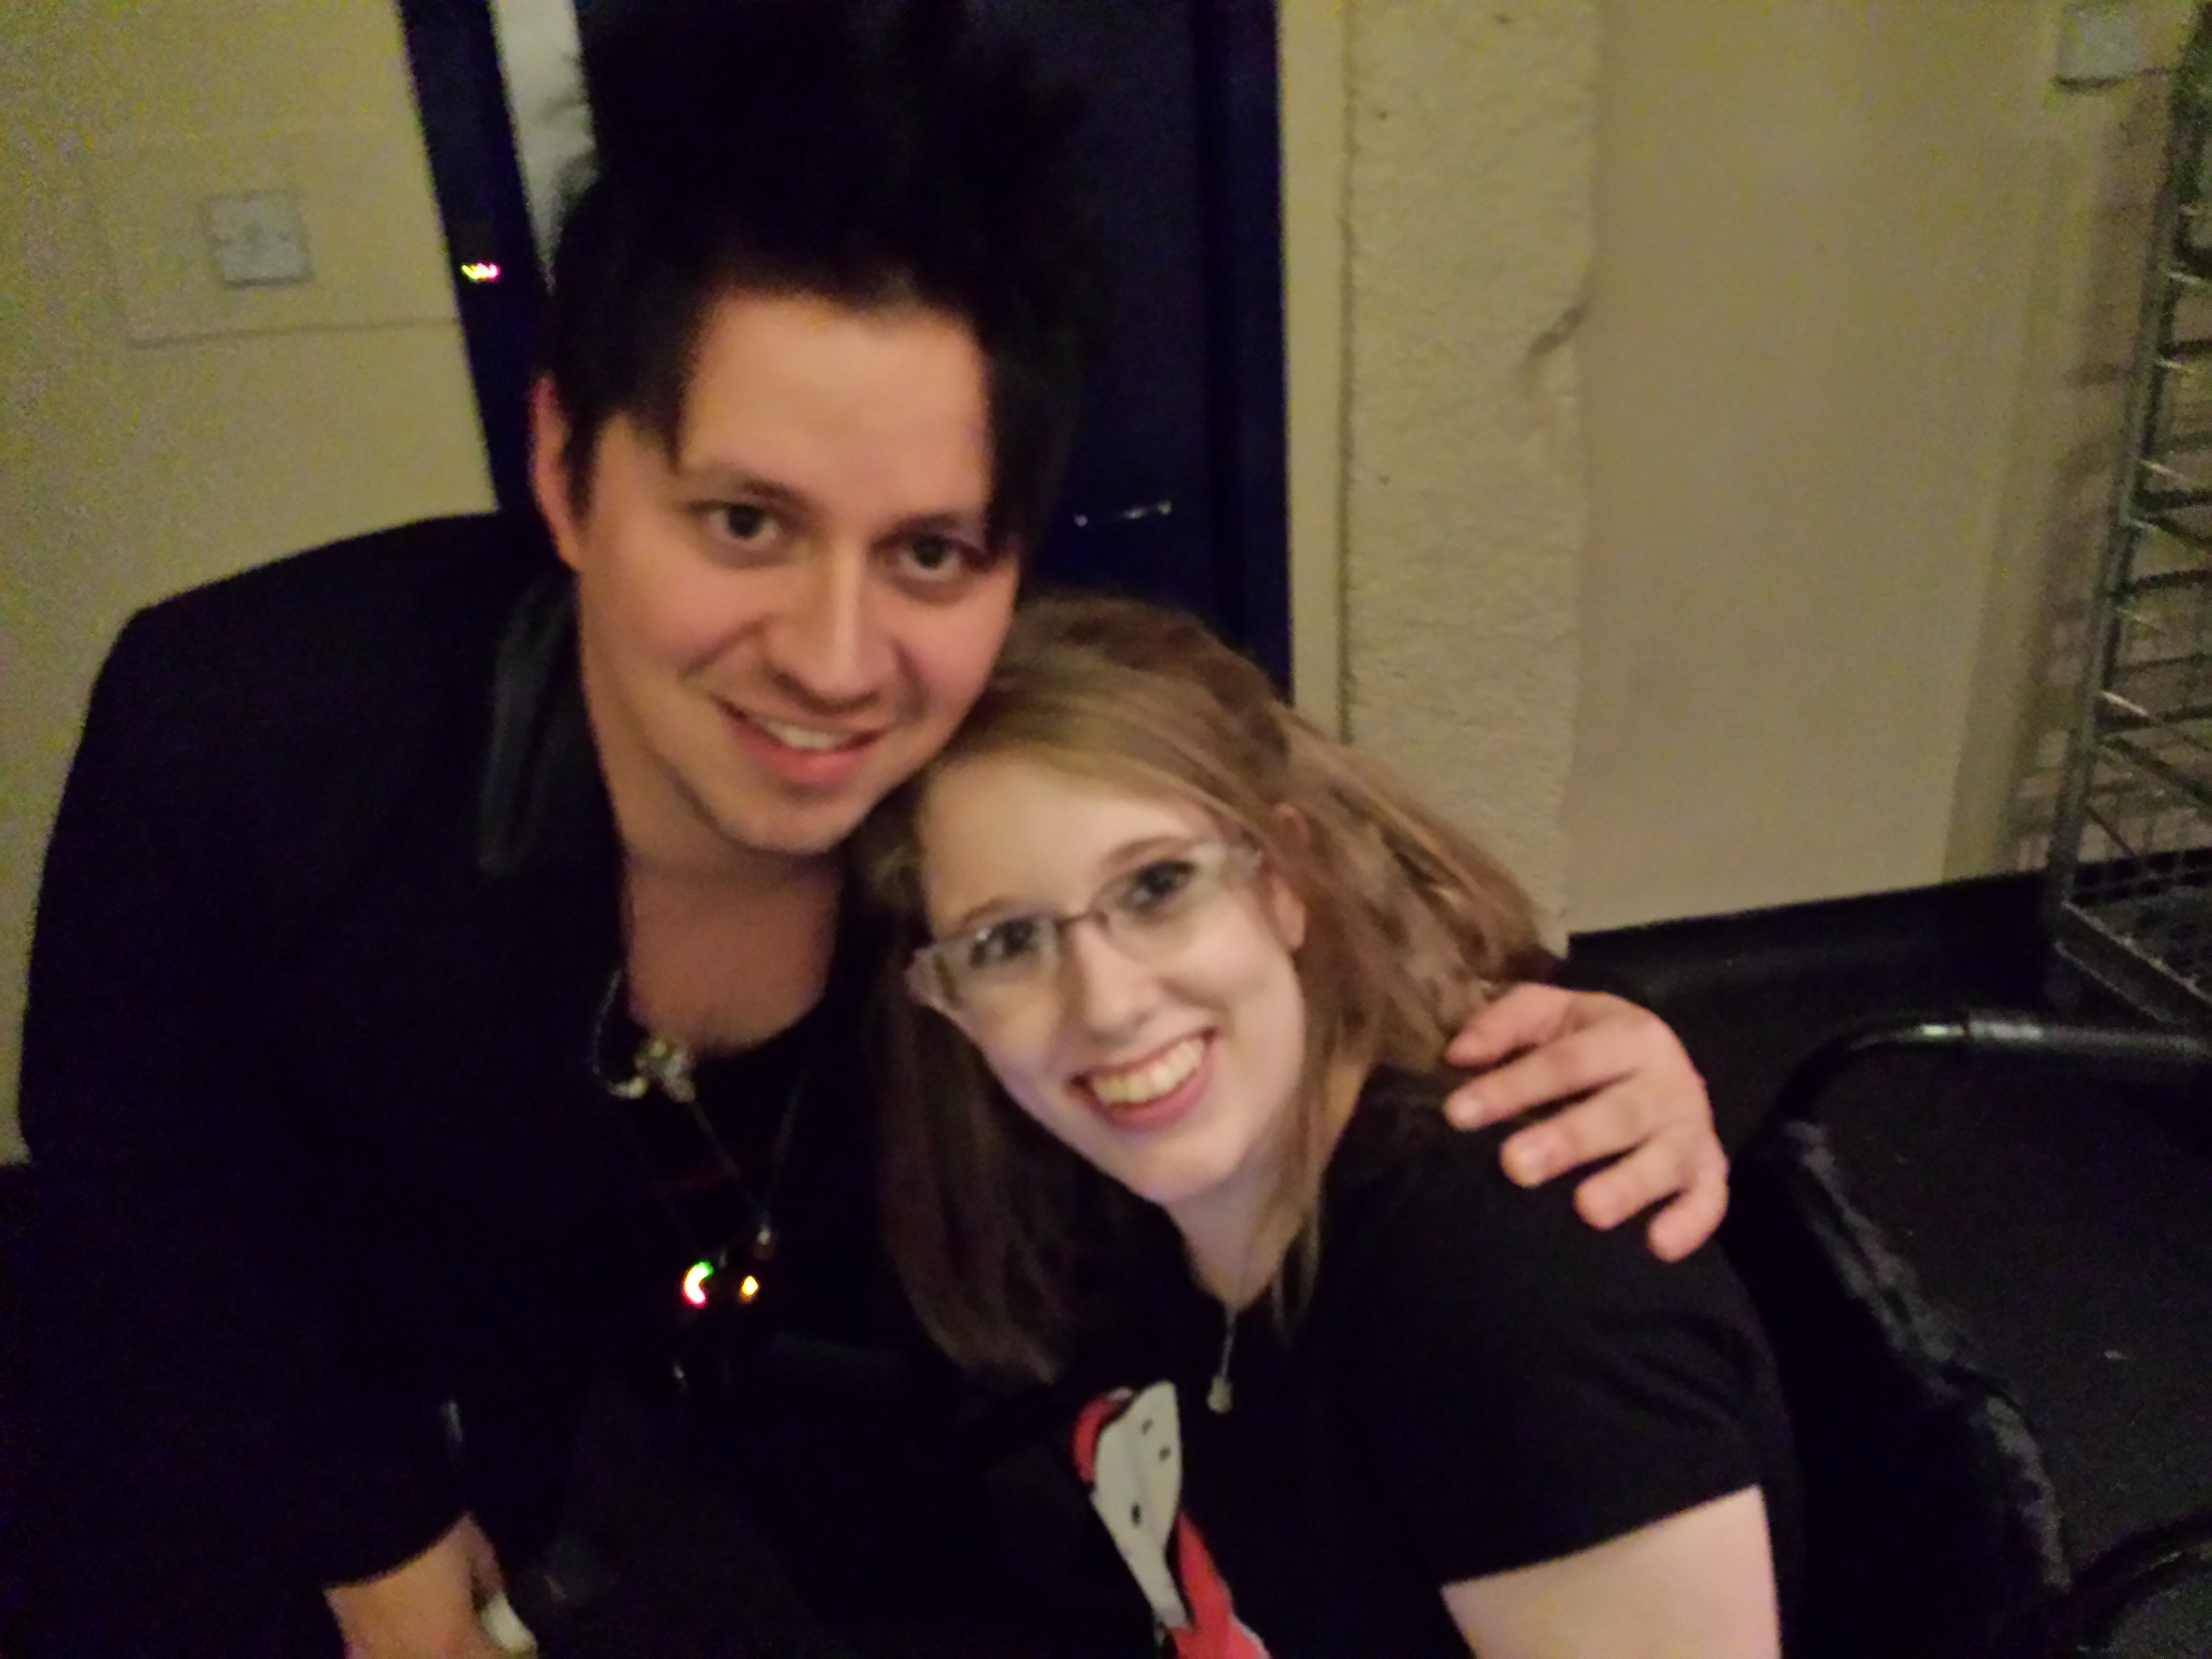 Harry from Yashin with his arm around me, smiling up at the camera for a photograph. I'm wearing my ghost-busters t-shirt. This was taken backstage due to the wheelchair access route, just before the gig kicked off.